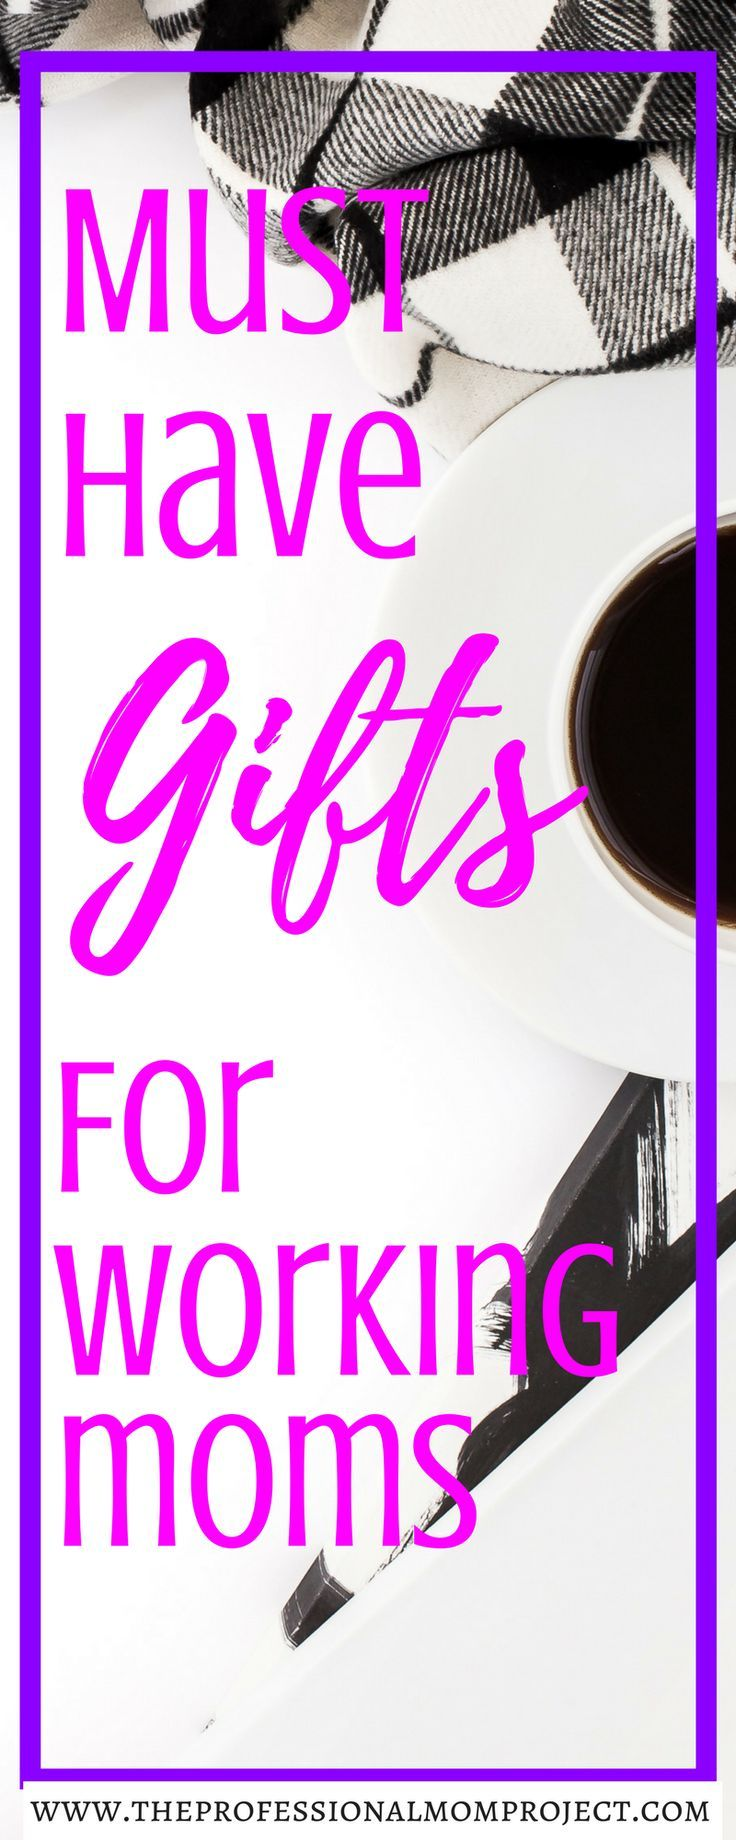 Must have gifts for working moms | best gifts for working moms | Christmas presents for moms | holiday gifts for working moms | stocking stuffers for moms | gift ideas for moms | practical gifts for moms #giftguide #mom